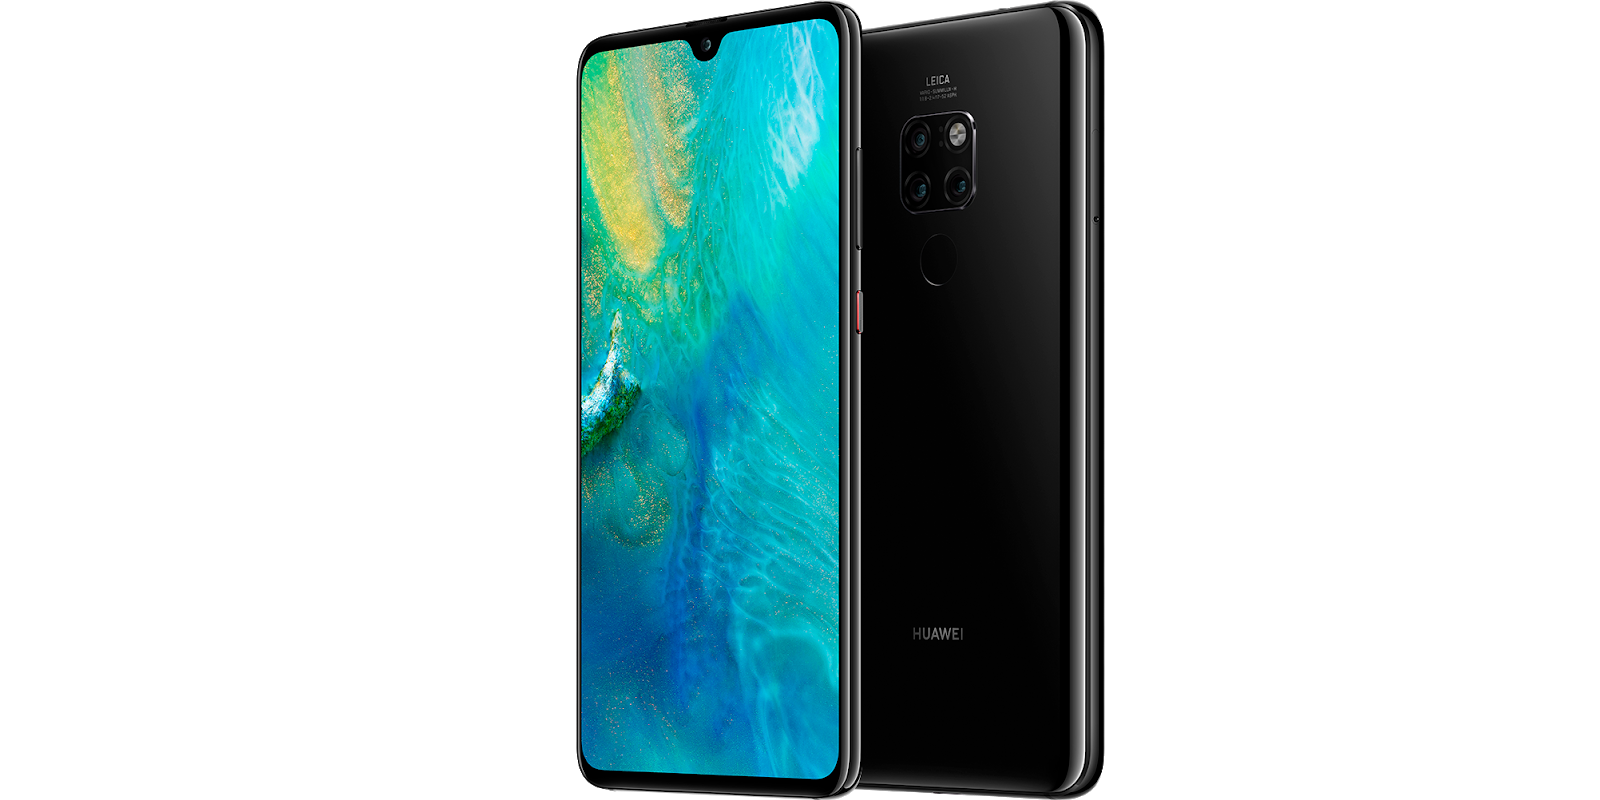 Huawei Mate 20 Officially Announced Djs Mobiles